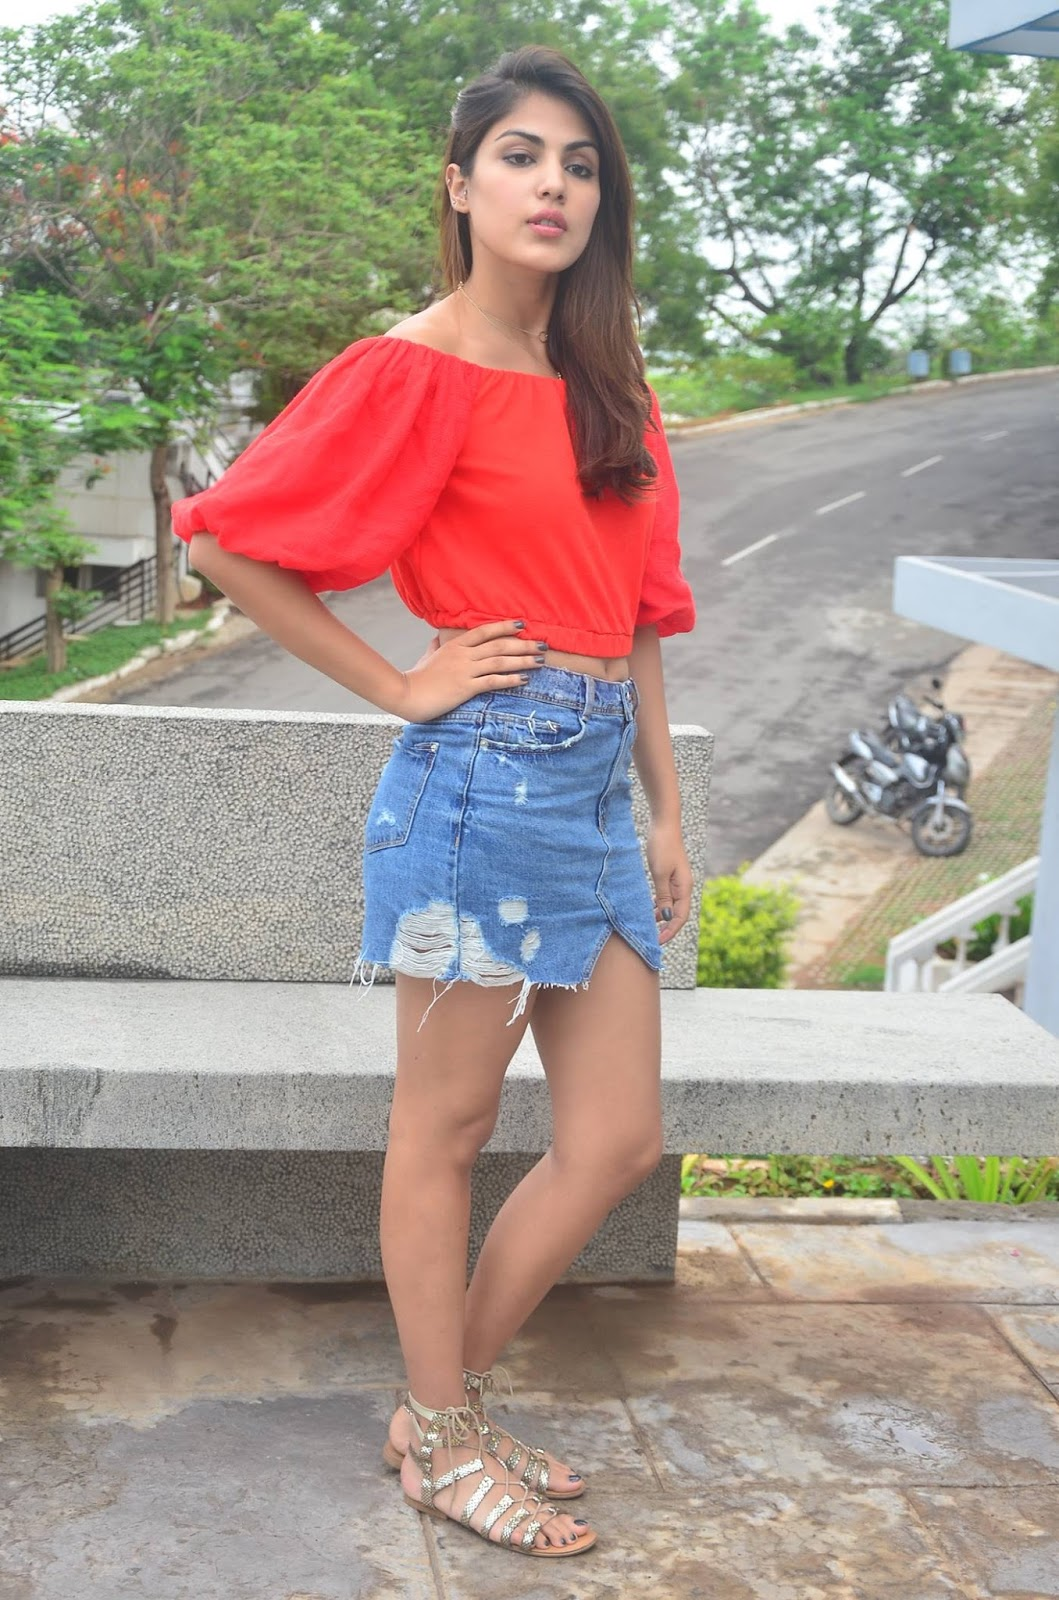 Rhea Chakraborty In Red Top Stunning Spicy Photos